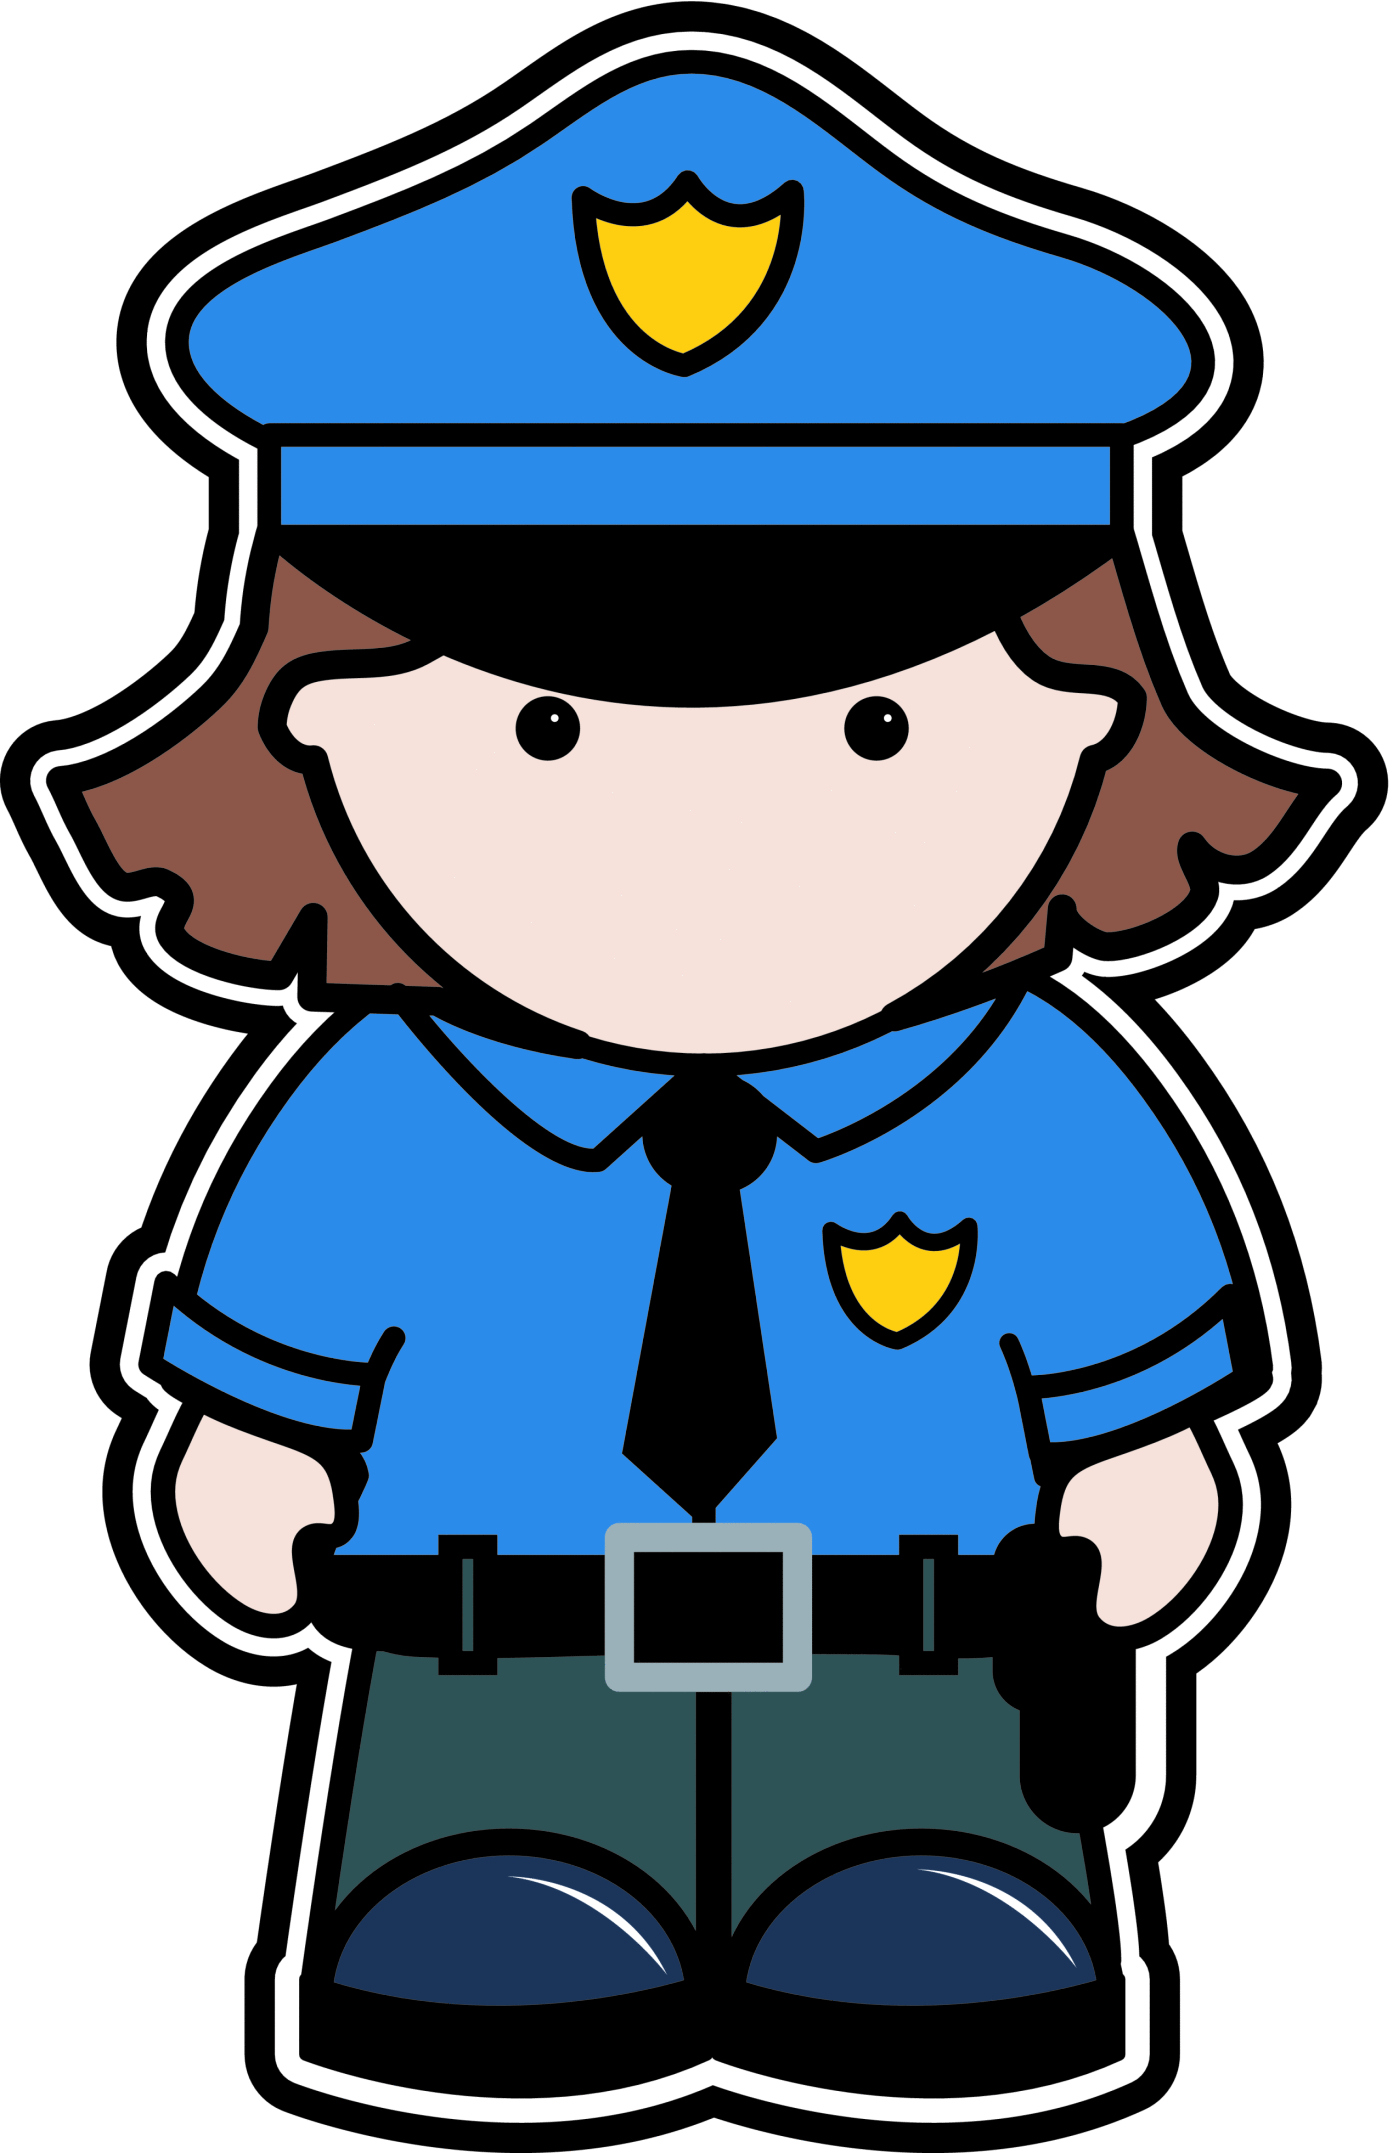 police officer clipart panda free clipart images cute police woman clipart police woman clip art site